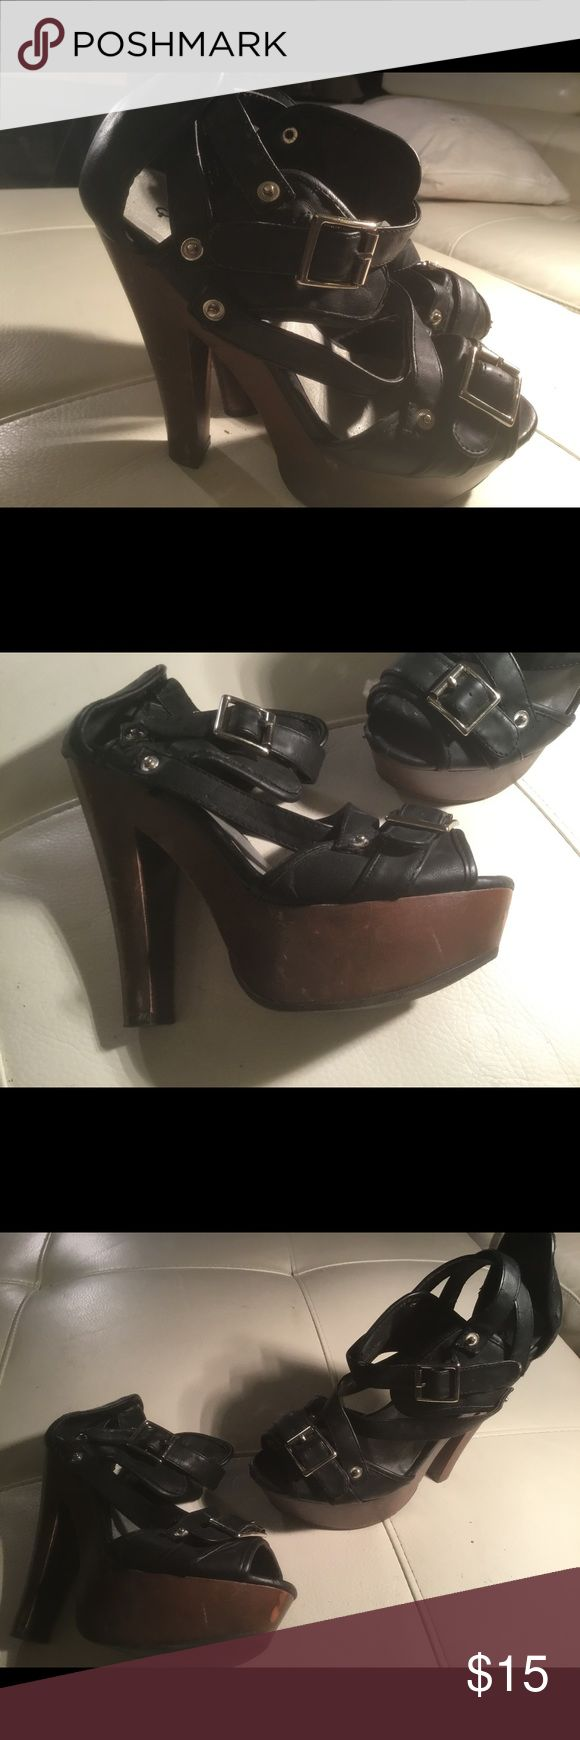 Black Ladies Size 7m Strappy Shoes 👠🔥🔥🔥 Black Ladies Size 7m Strappy Shoes 👠🔥🔥🔥 These have scratches and a few imperfections:However great value! 🔥🔥🔥 Shoes Heels